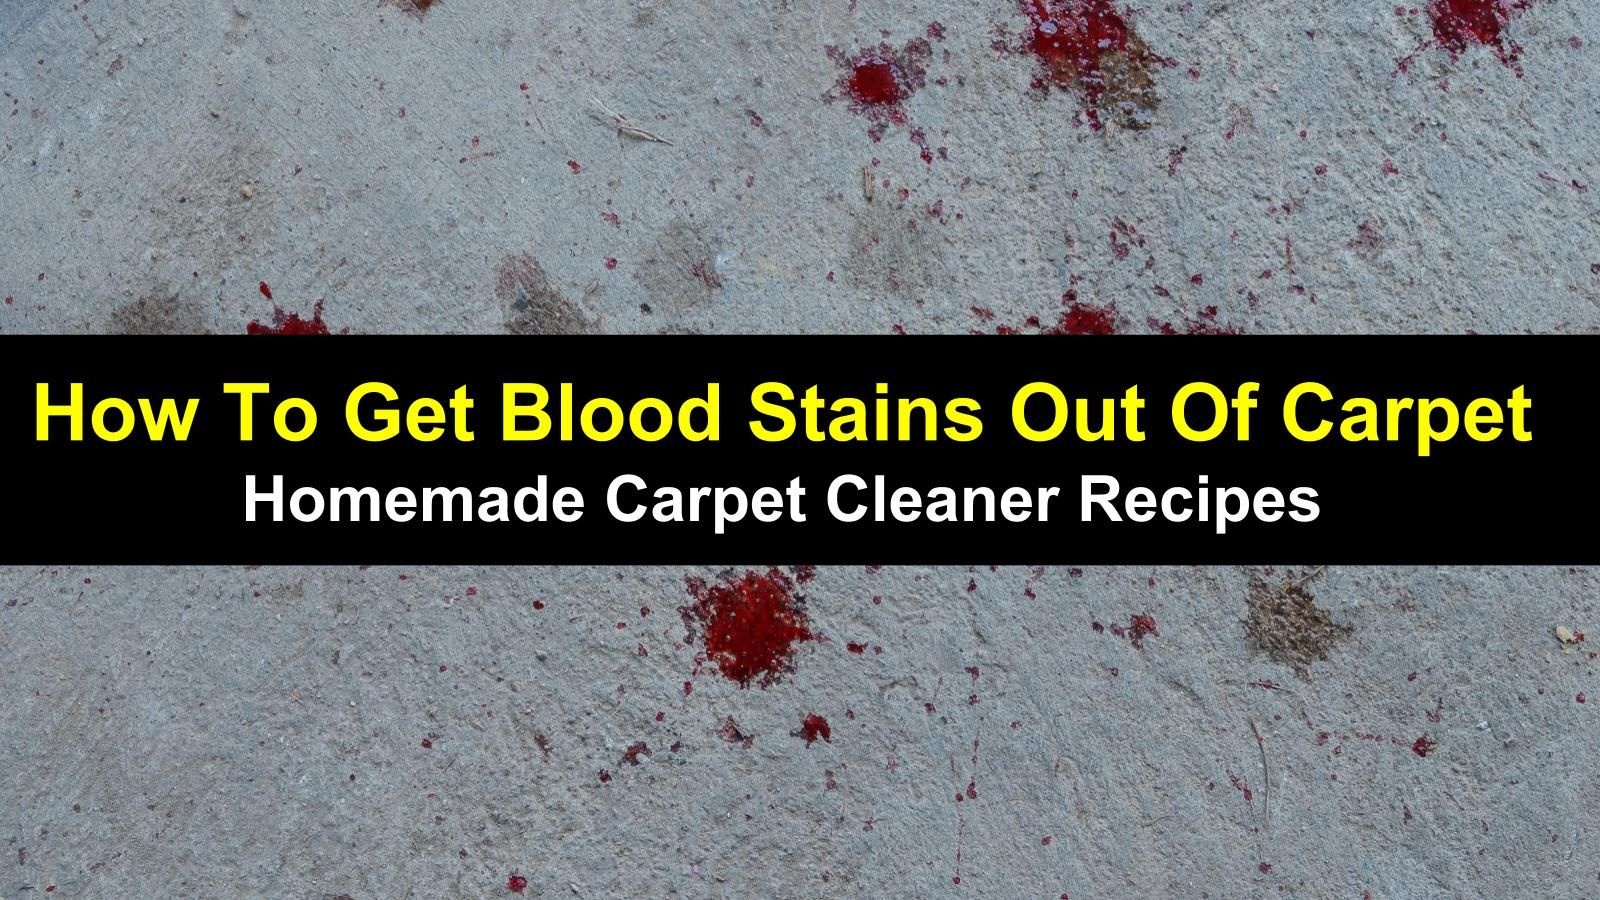 How To Get Blood Stains Out Of Carpet Homemade Carpet Cleaner Get Blood Stains Out Blood Out Of Carpet Carpet Cleaners